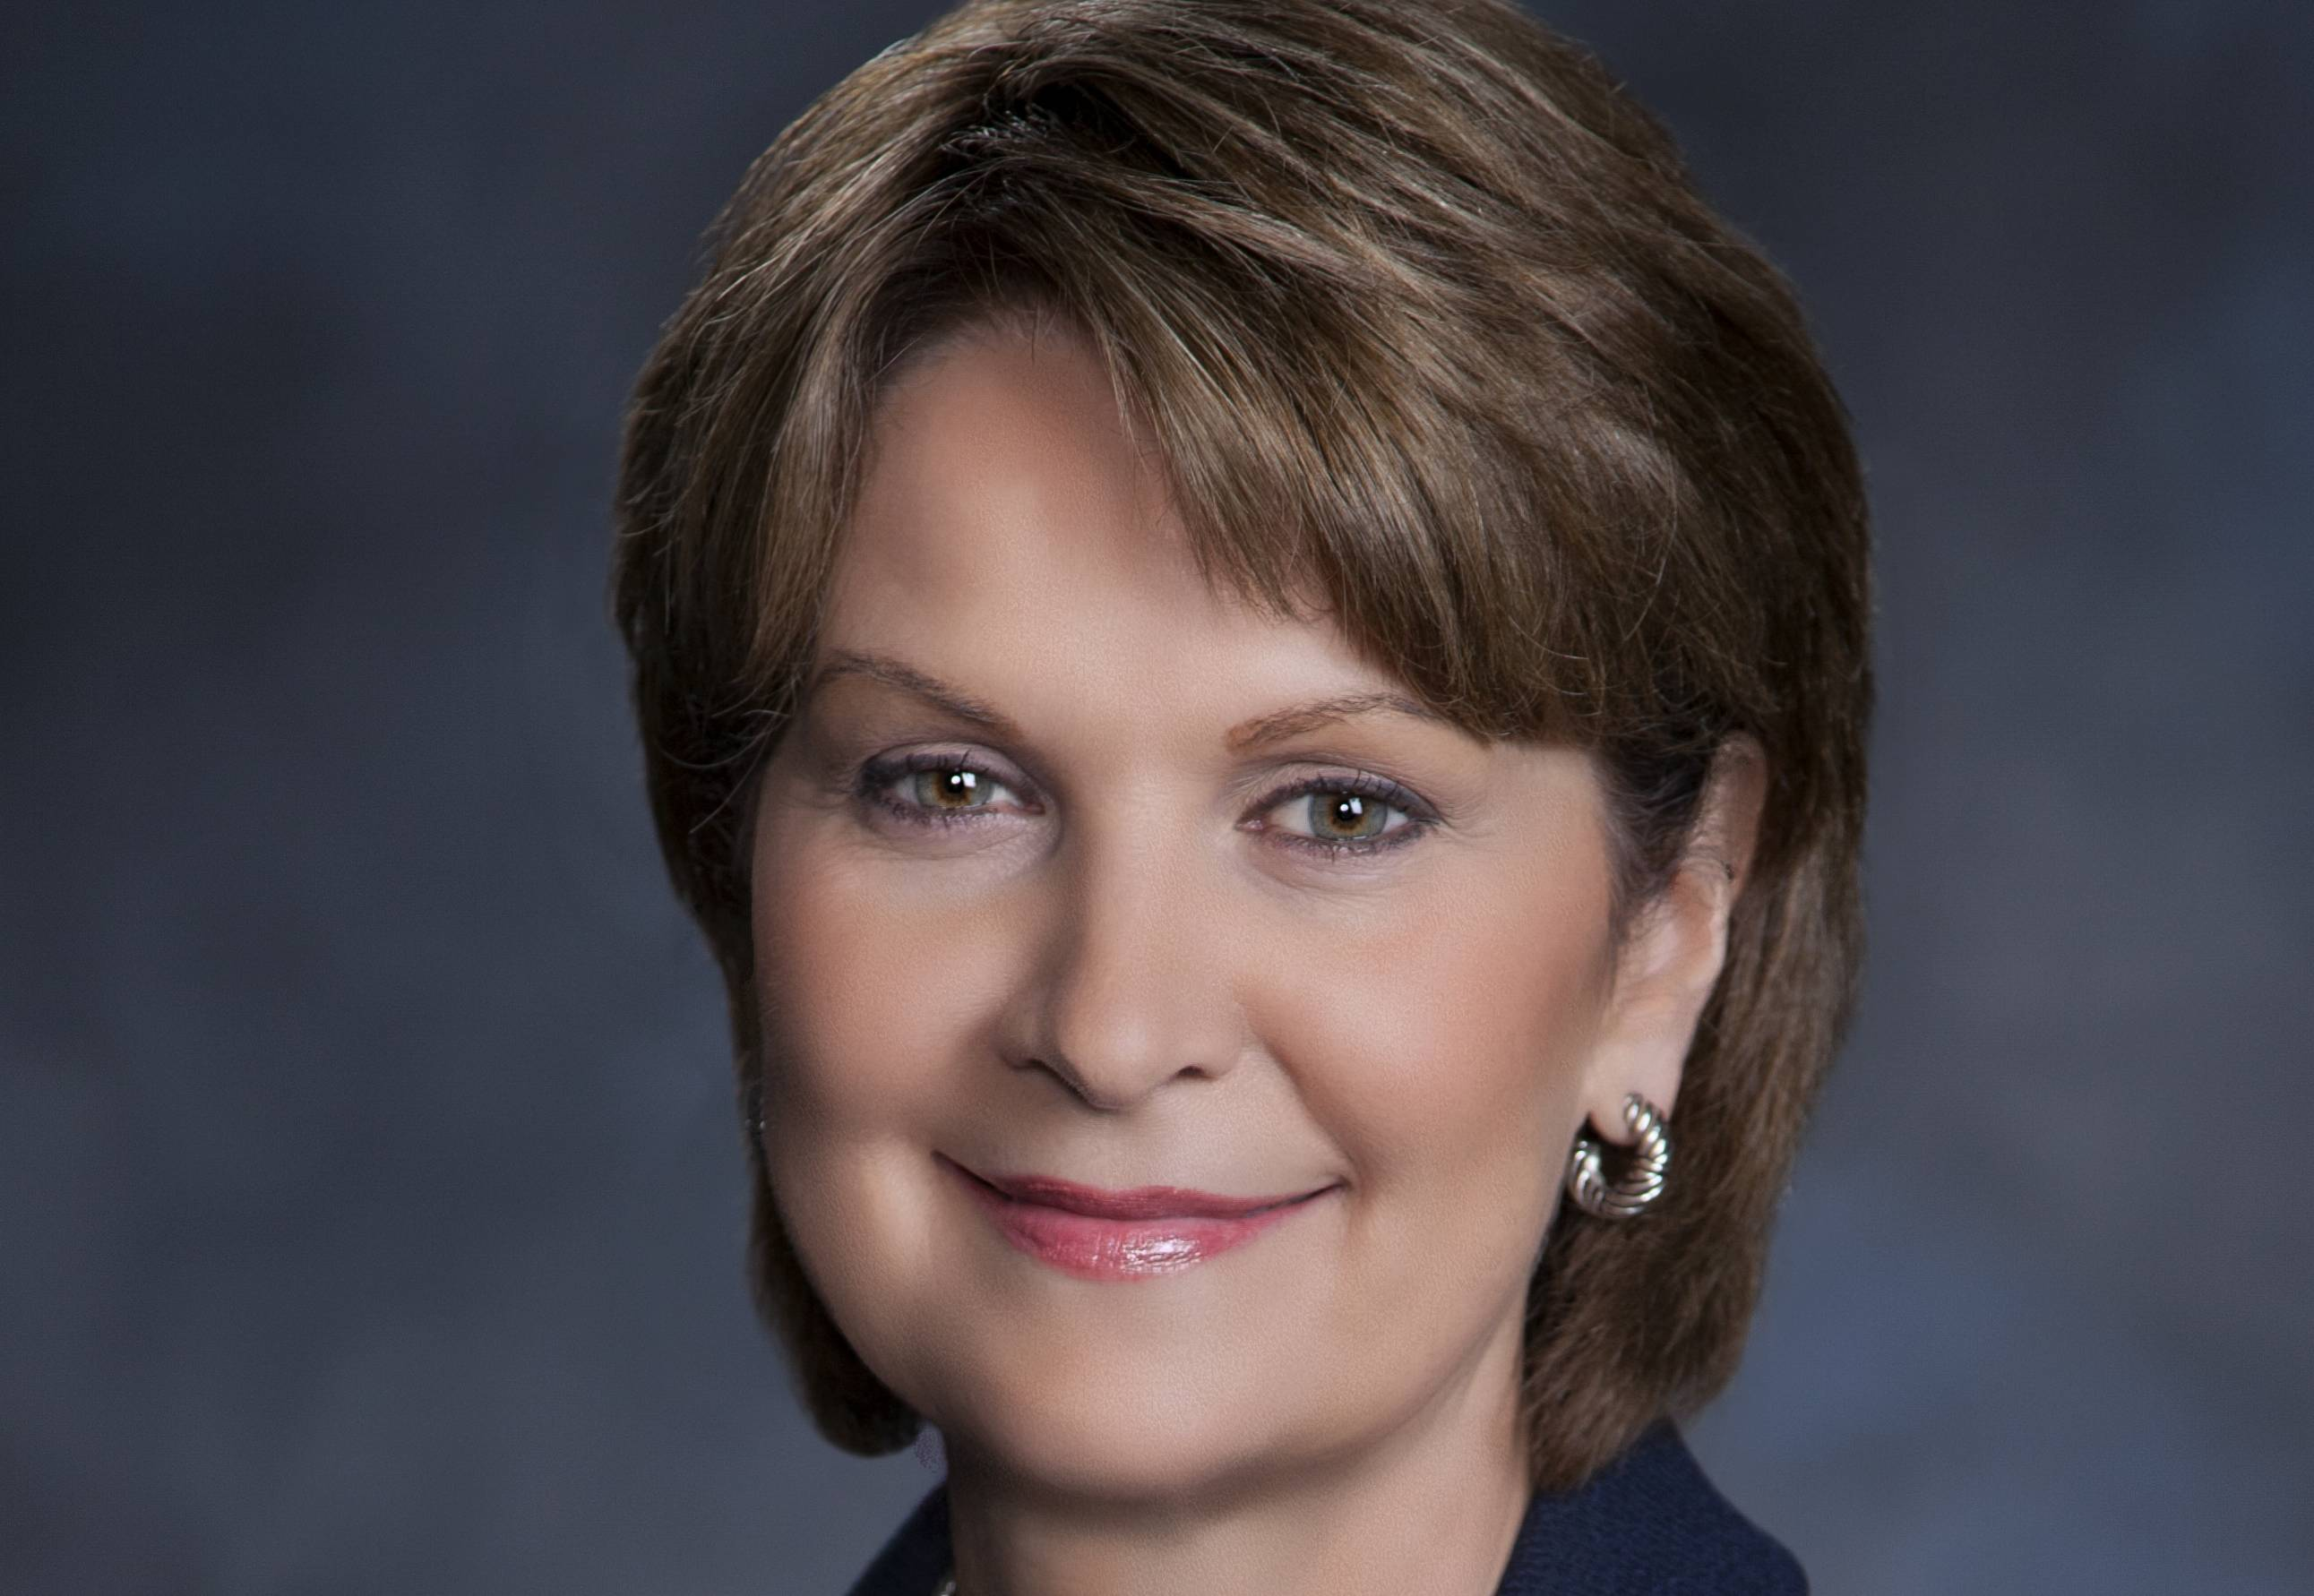 <h1>Marillyn Hewson</h1> Hewson stepped into the top job at Lockheed in January after its CEO-in-waiting suddenly resigned. She has since proved she was the right woman for the job all along: Under her leadership, profits and market value are up at the world's largest defense contractor—despite federal budget cuts.